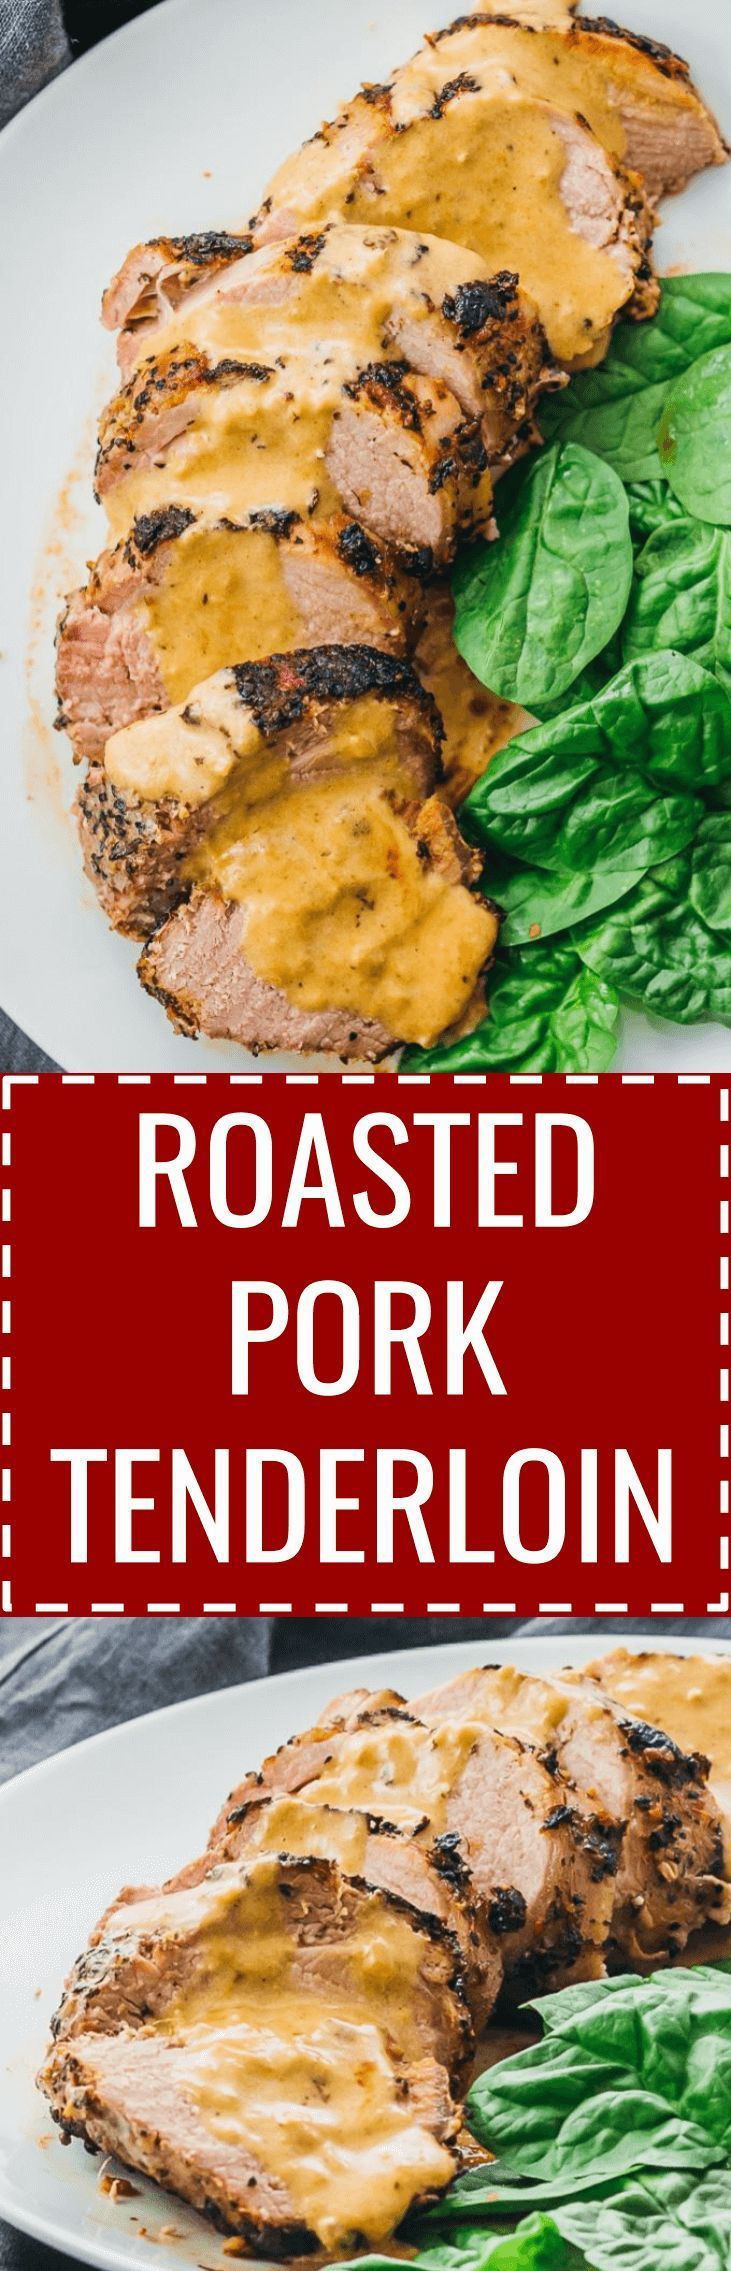 Here's an easy way to cook ultra-tender roasted pork tenderloin with a creamy mustard sauce. oven / baked / keto / low carb / diet / atkins / induction / meals / recipes / easy / dinner / lunch / foods / healthy / gluten free / paleo / how to cook / best / whole 30 / leftovers / dijon / 21 day fix / one pan / skillet / quick / stove top / sliced #pork #dinner via @savory_tooth